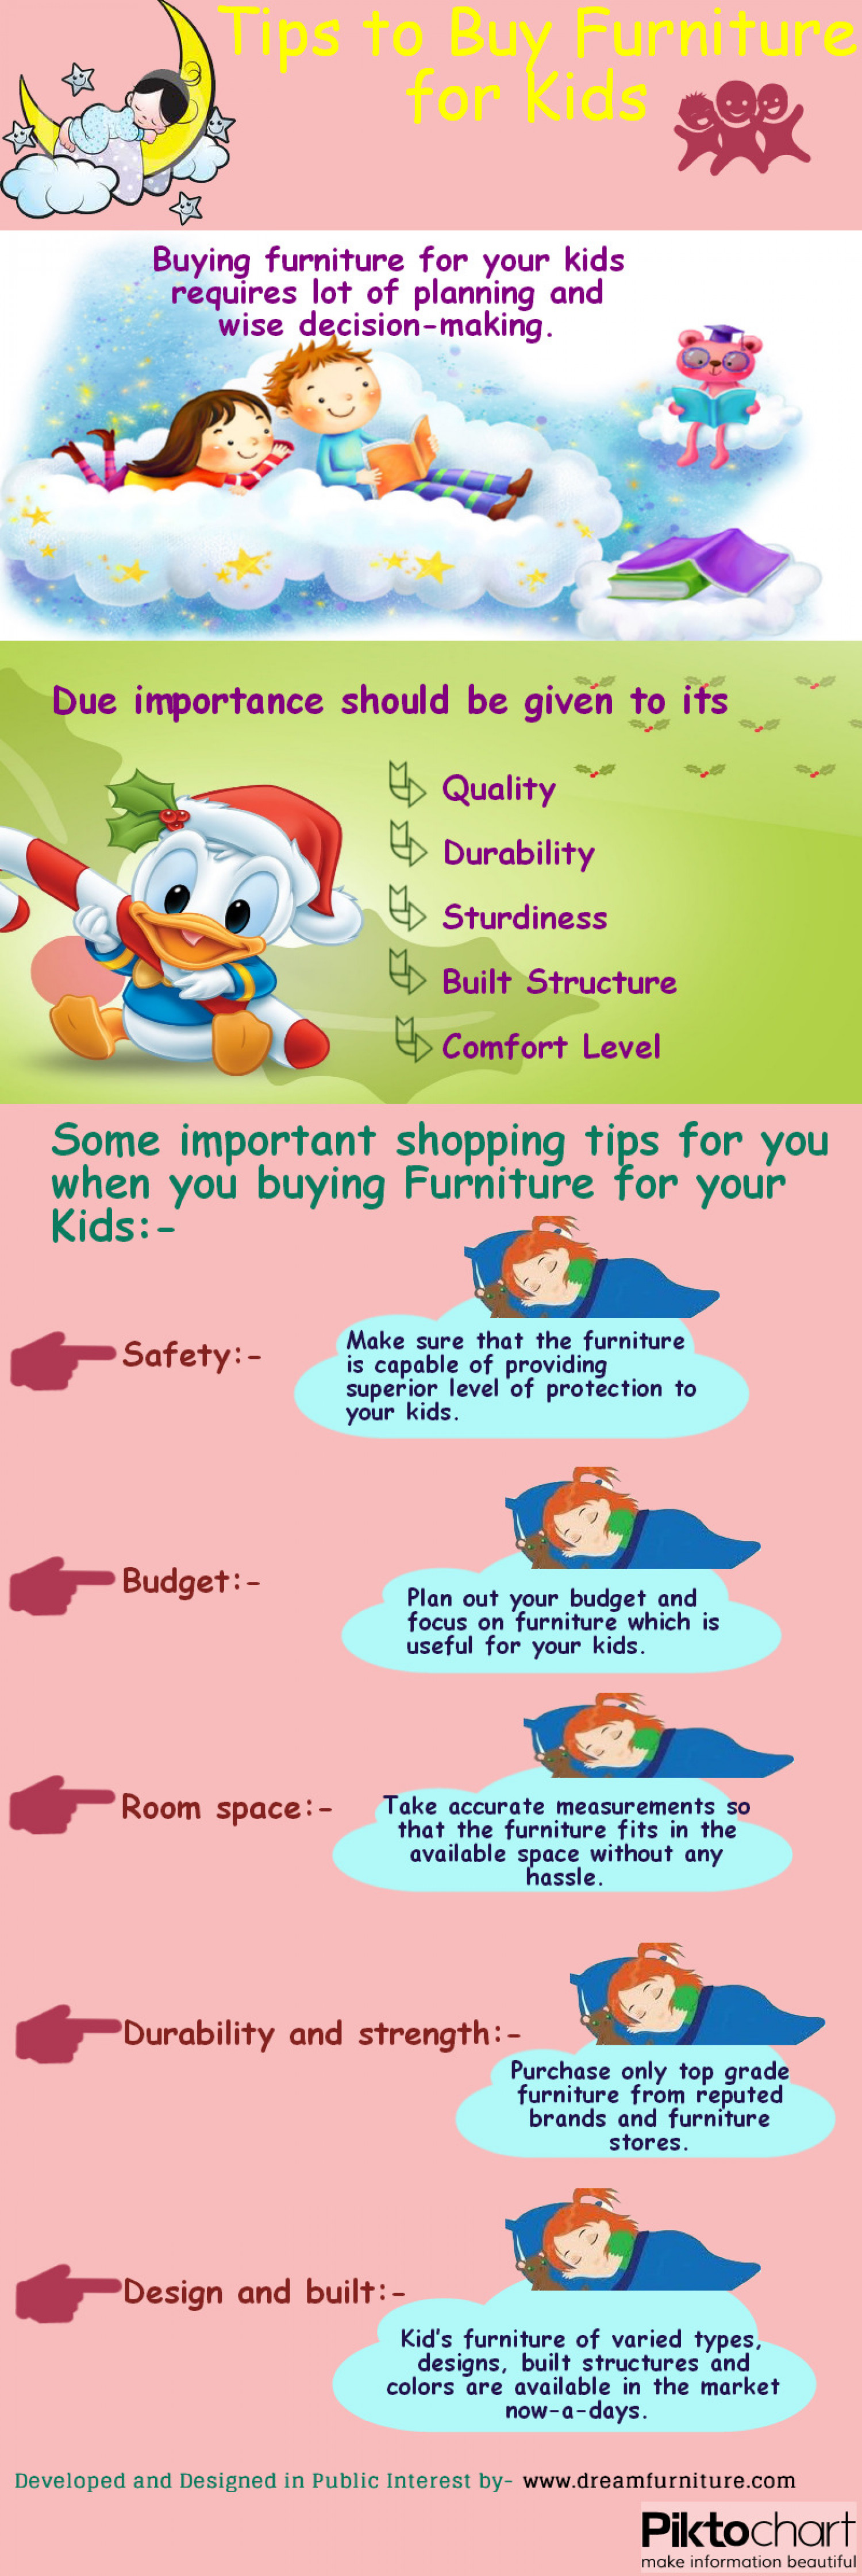 Tips to buy Furniture for your Kids Infographic